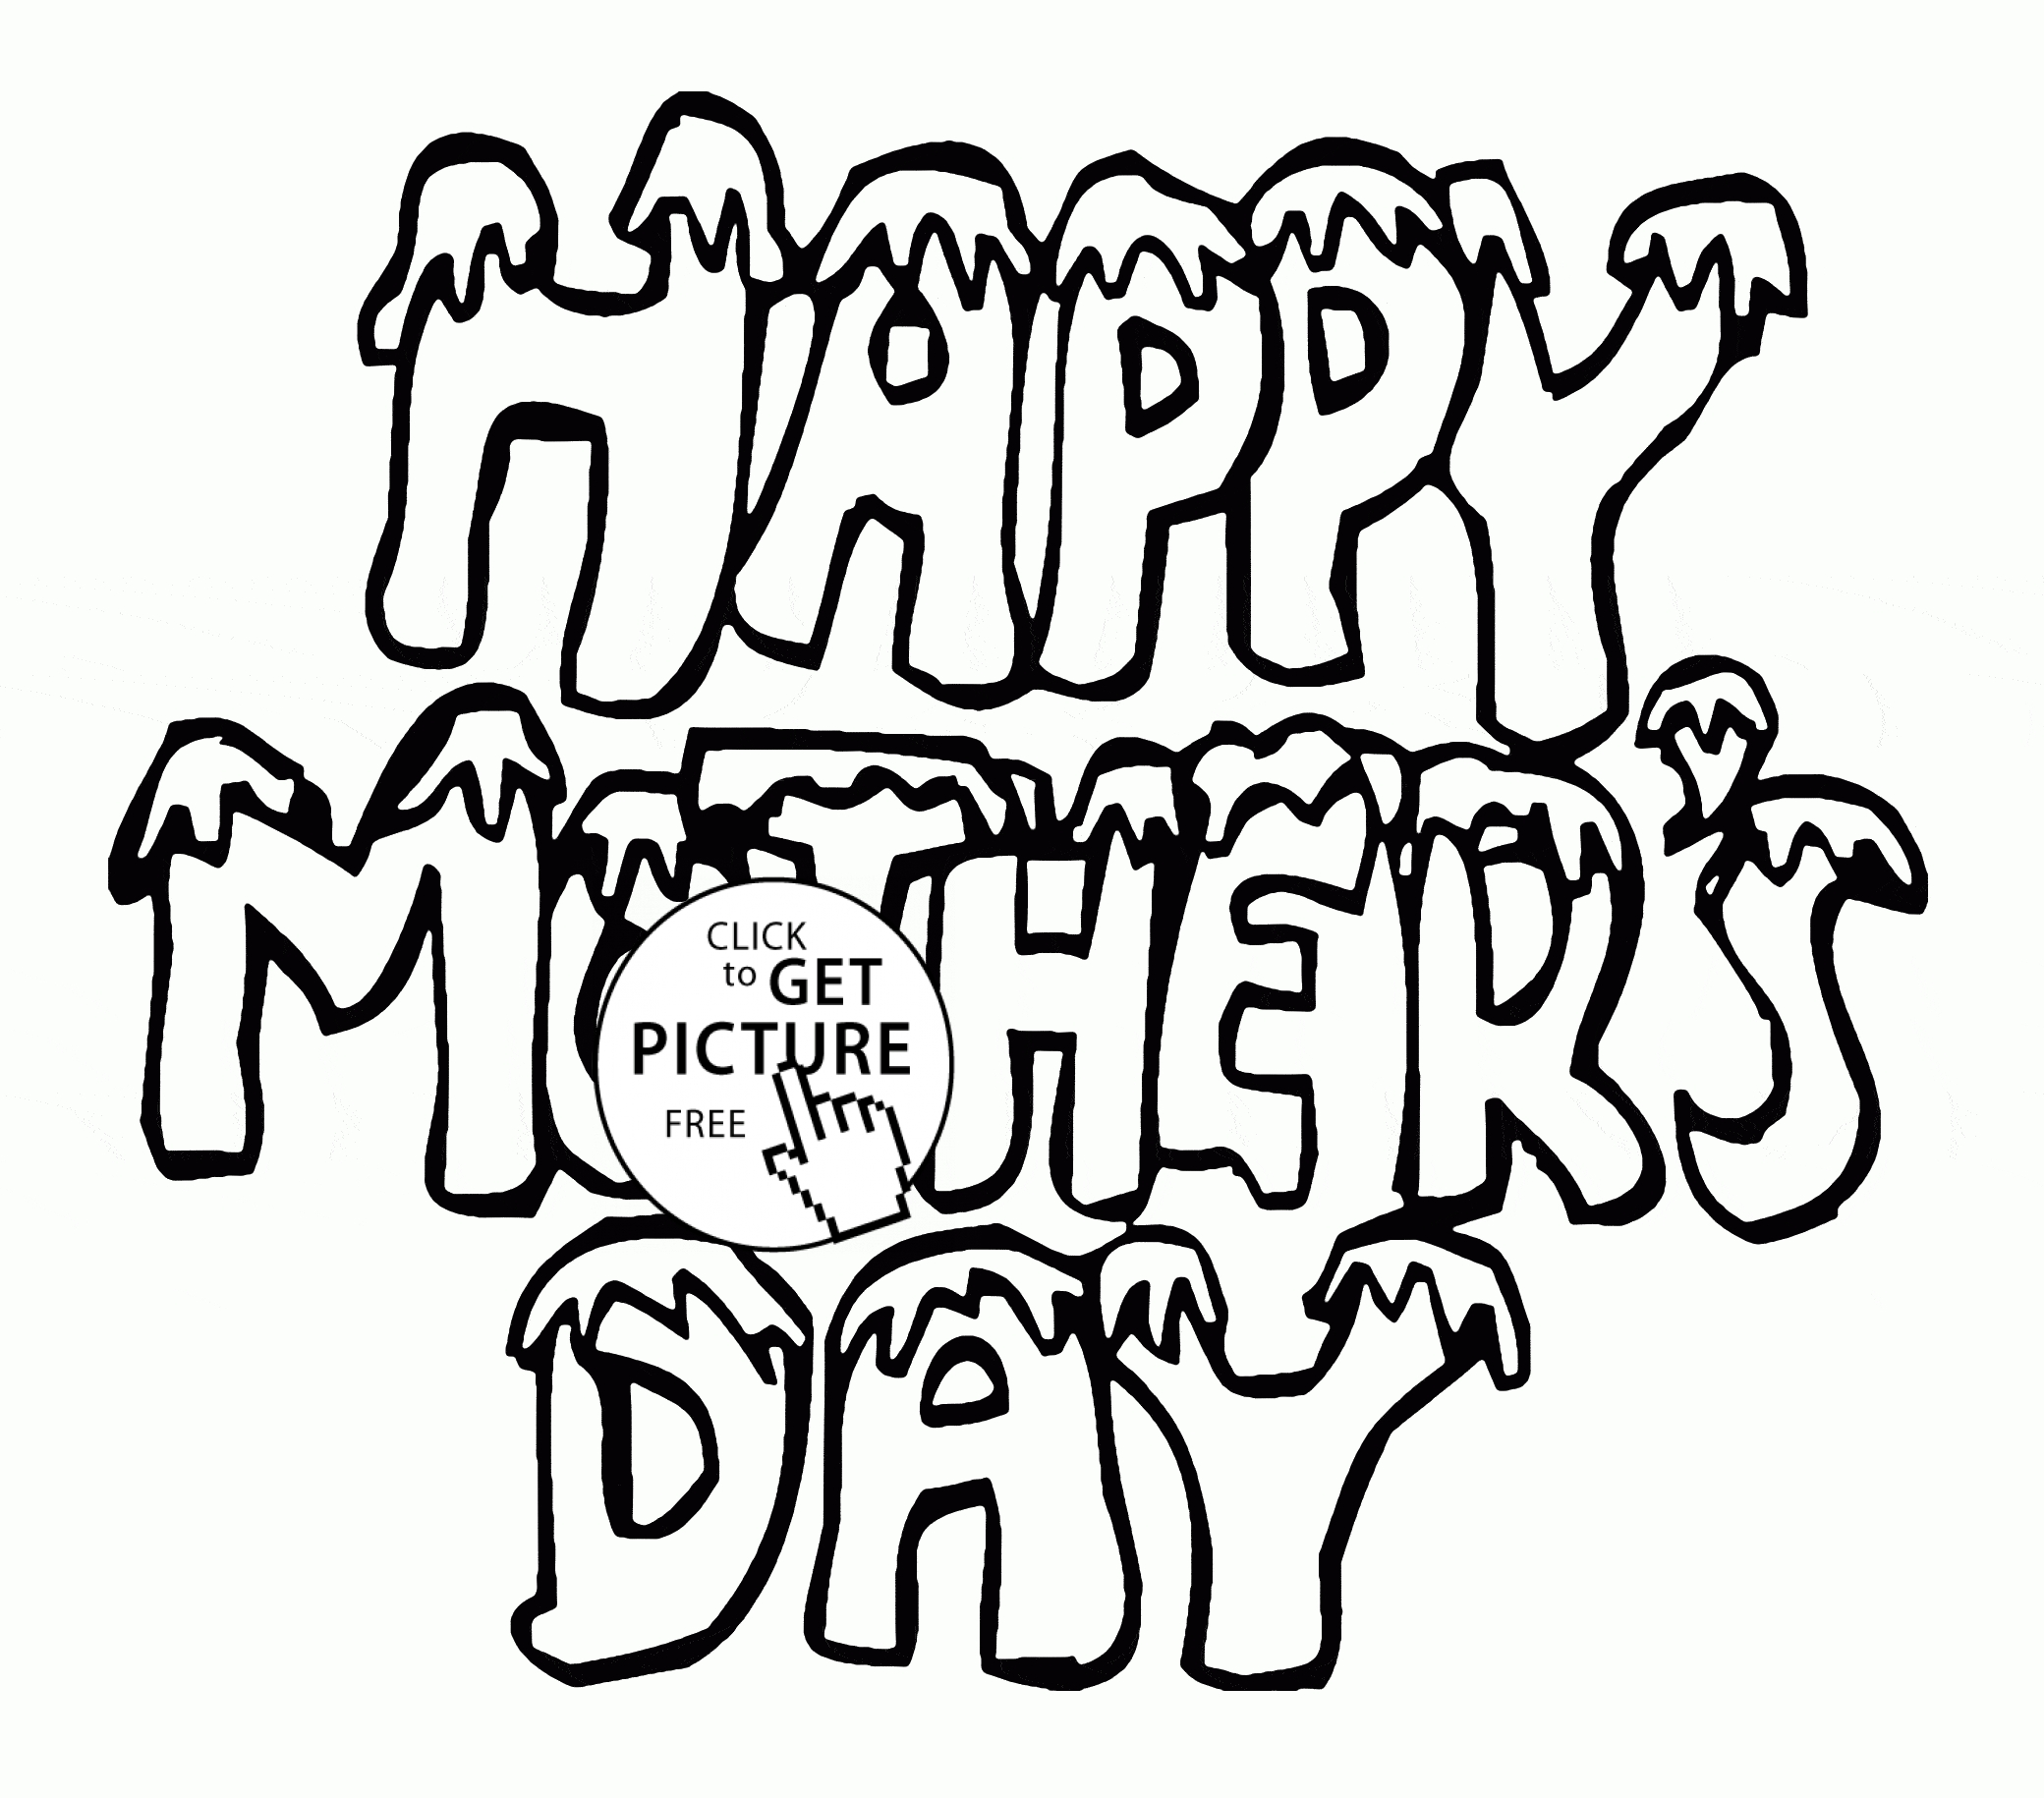 Free Mothers Day Coloring Pages - Mother S Day Coloring Page for Kids Coloring Pages